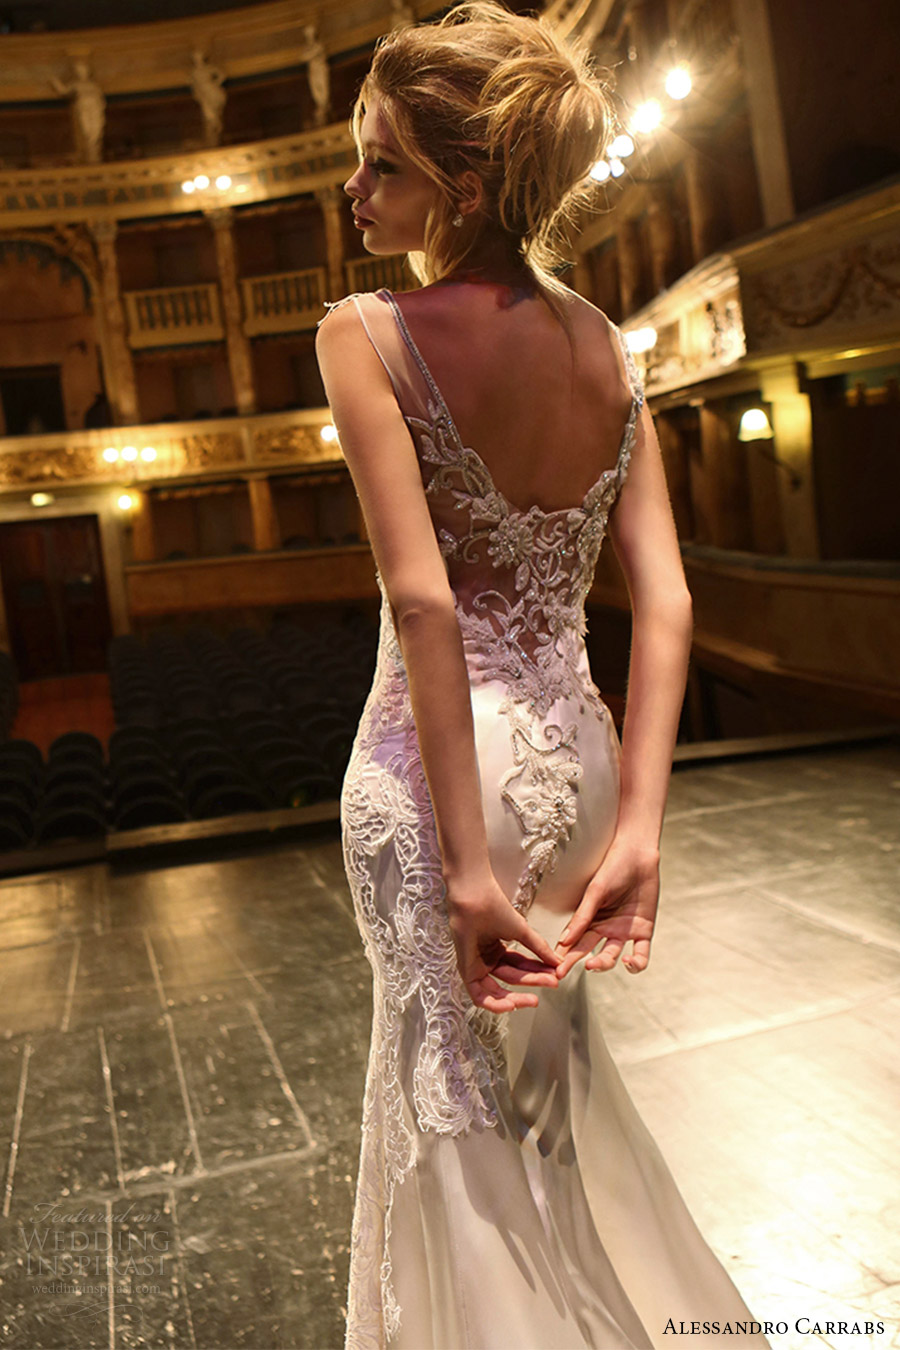 alessandro carrabs couture bridal 2016 sleeveless boat neck trumpet wedding dress (001) zbv sheer back